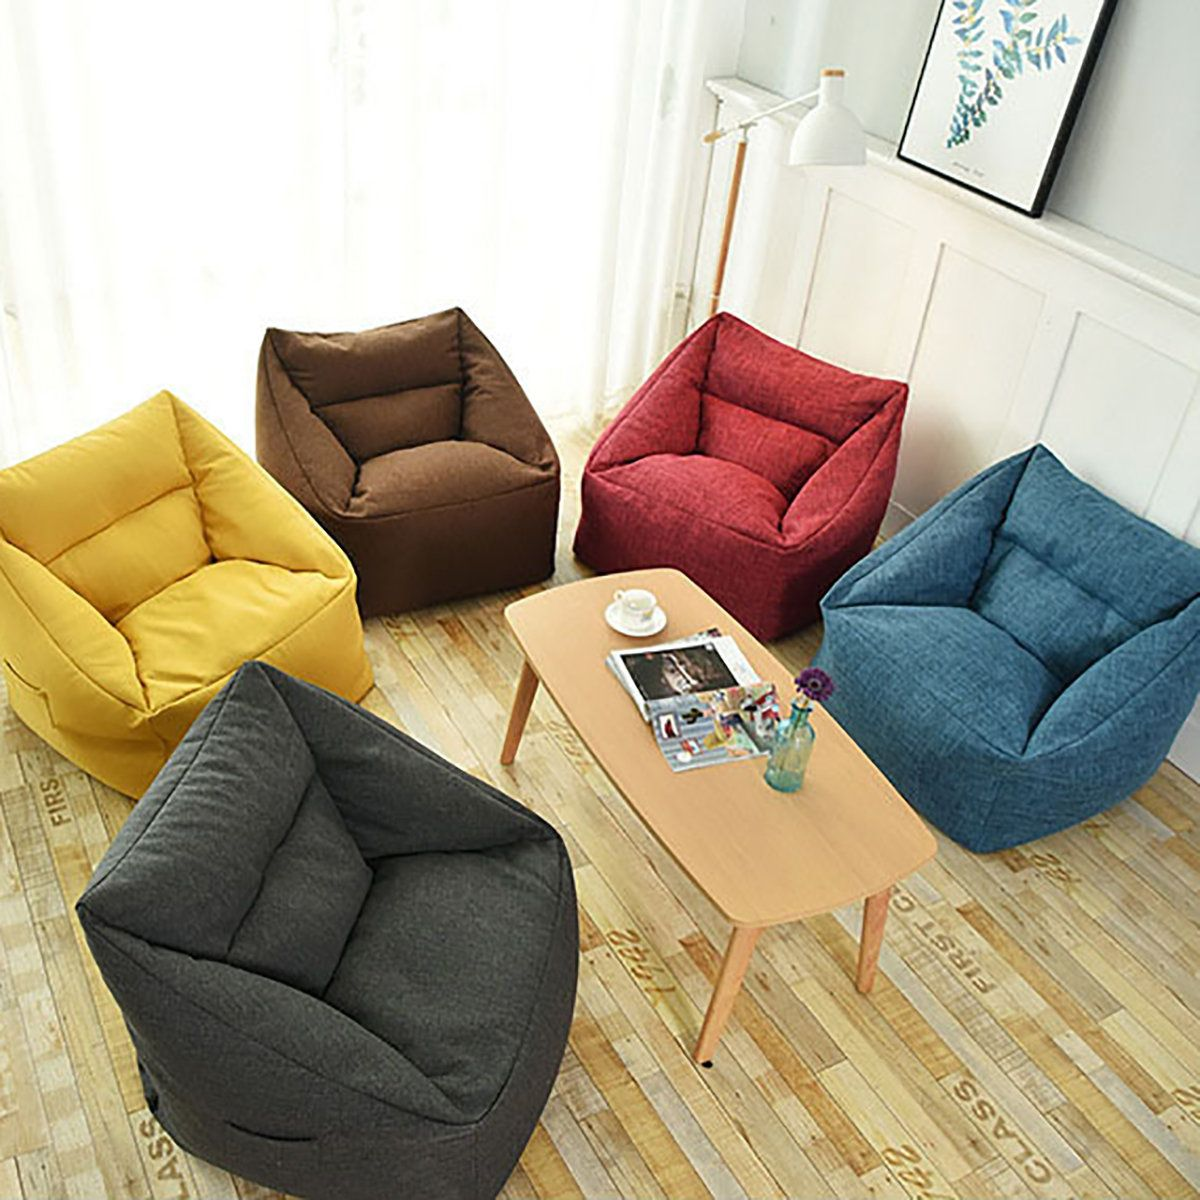 17 Best Bean Bag Chairs of 2019 to Consider for Your ...